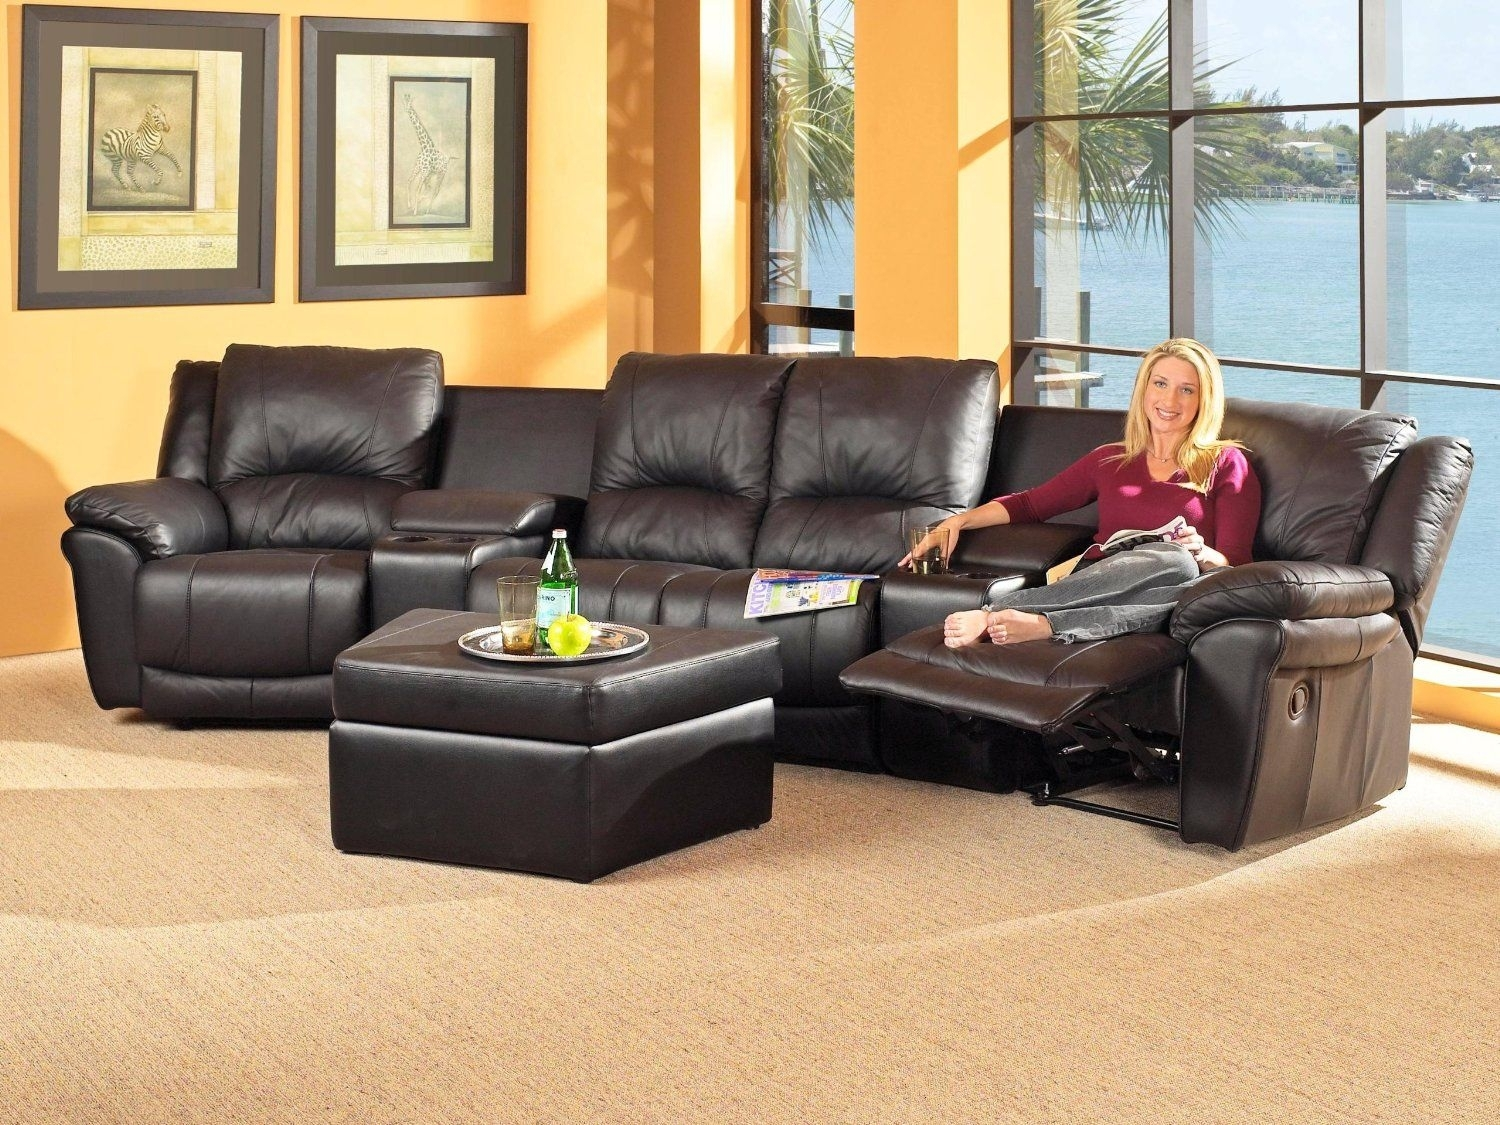 Sectional Sofas For Small Spaces | Leather Sectional Black Small Within Sectional Sofas With Recliners For Small Spaces (View 6 of 10)